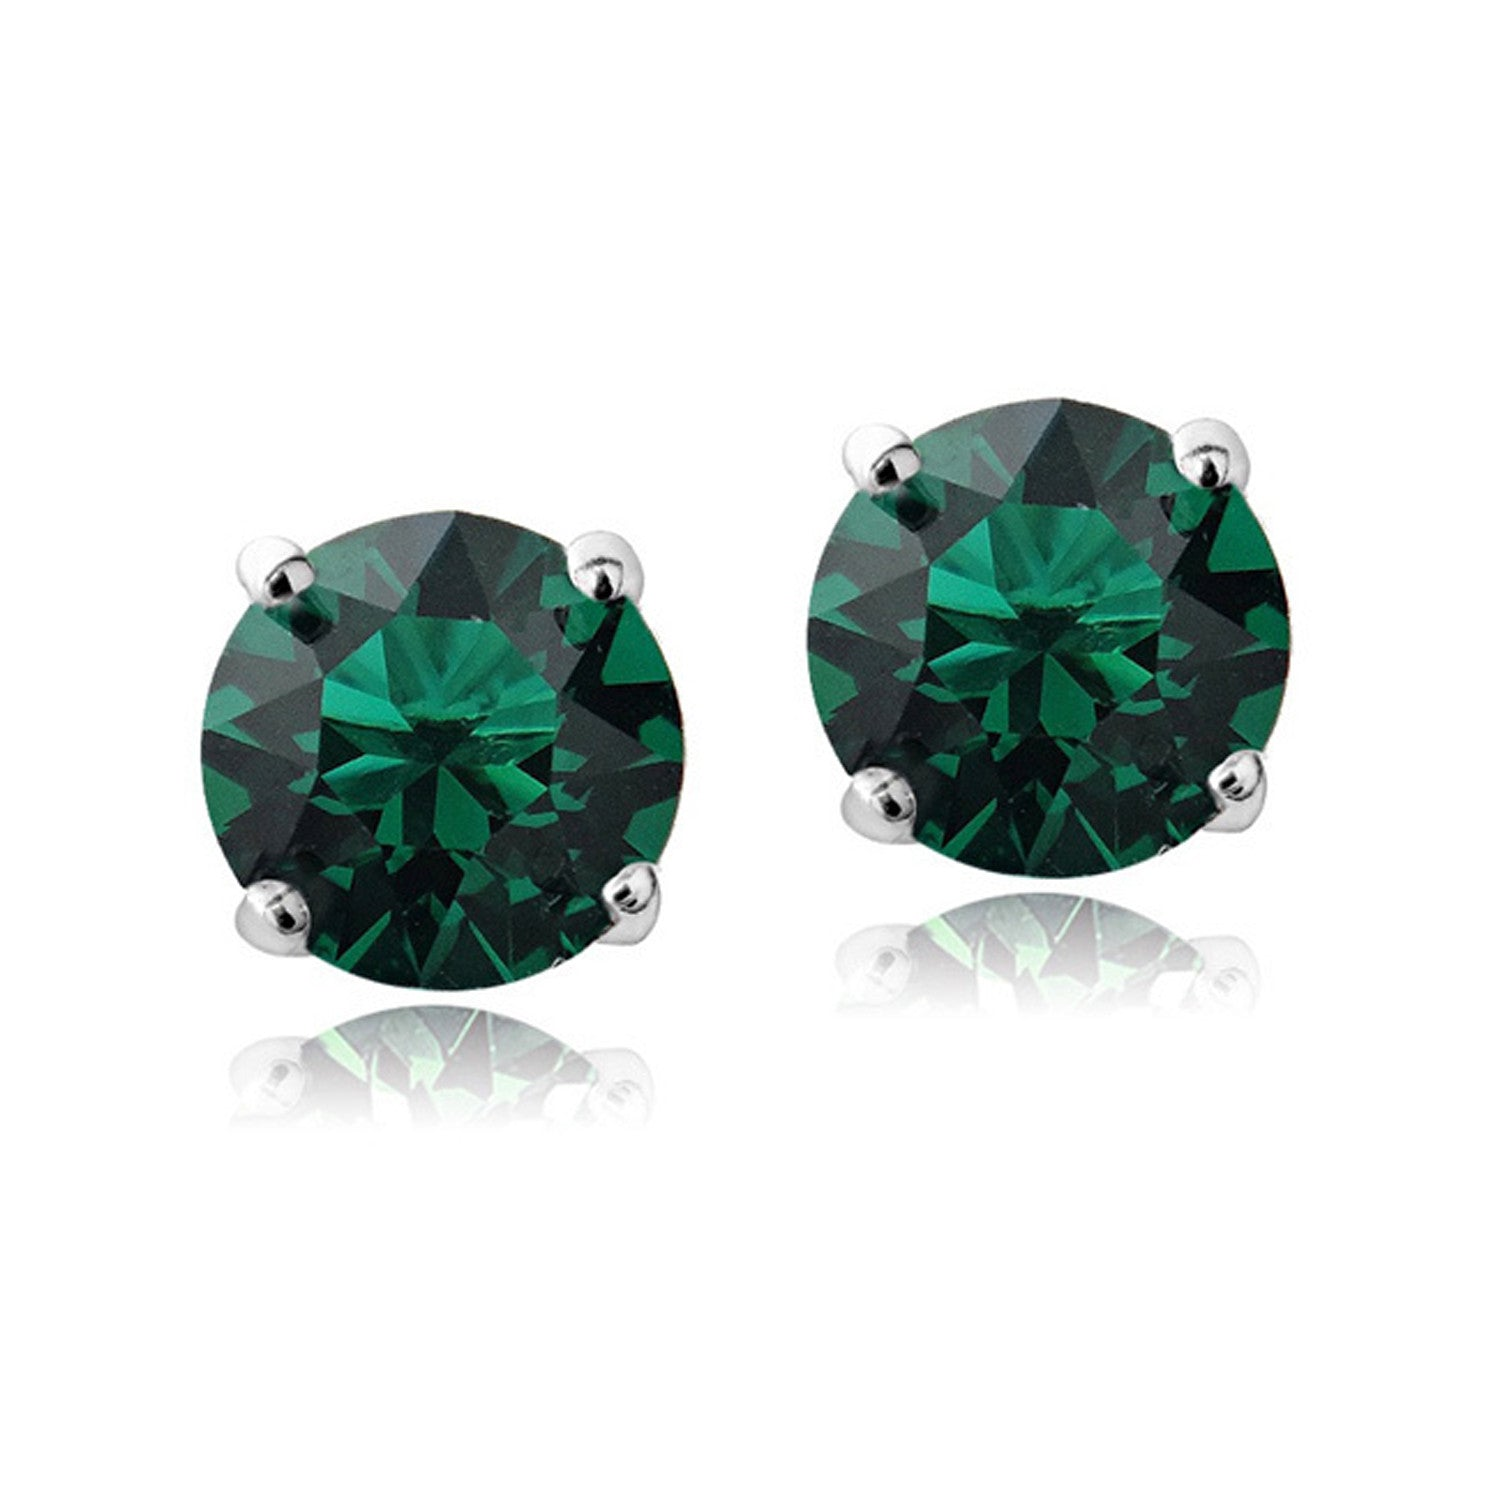 Swarovski Elements Sterling Silver Butterfly Clasp Birthstone Stud Earrings - May Emerald